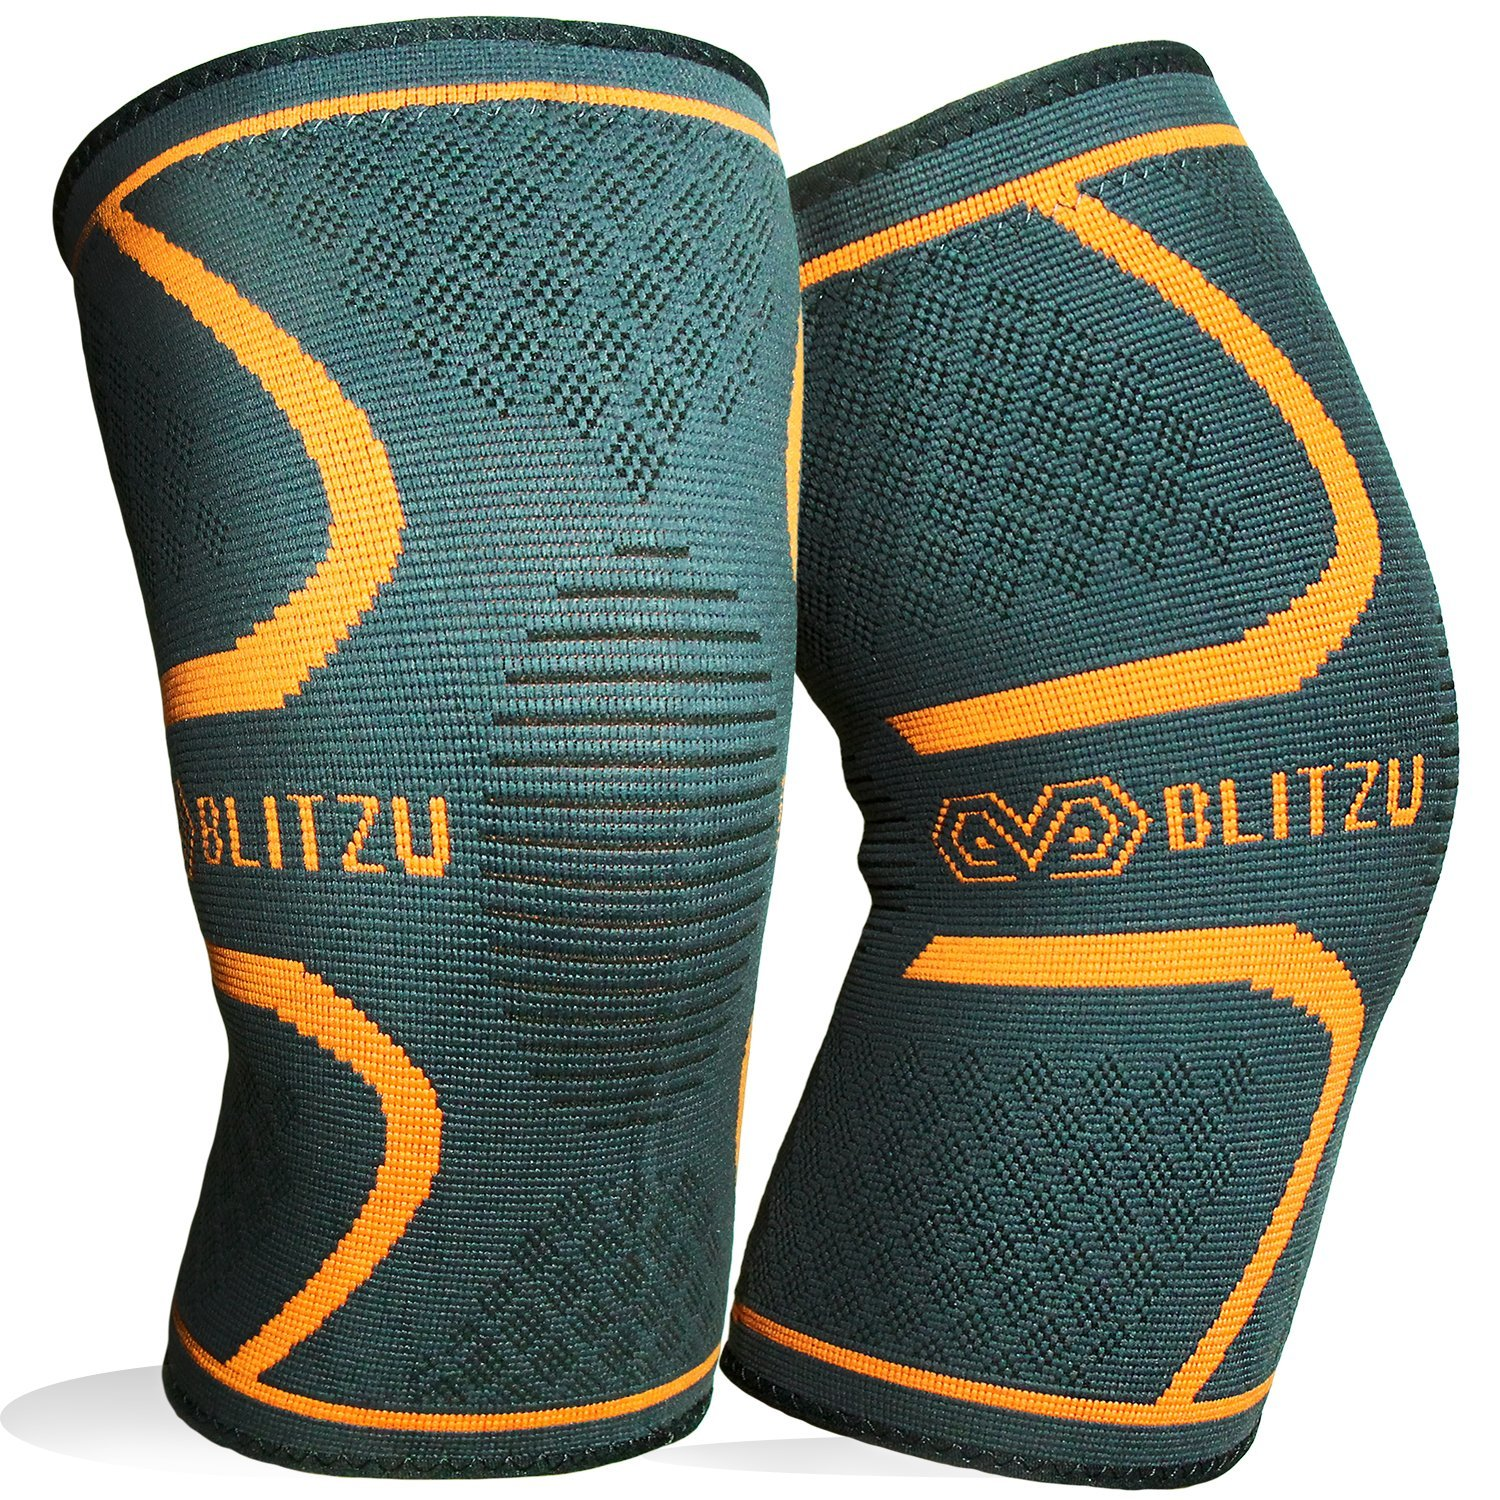 BLITZU Flex Plus Compression Knee Brace Joint Pain, ACL MCL Arthritis Relief Improve Circulation Support Running Gym Workout Recovery Best Sleeves Patella Stabilizer Pad